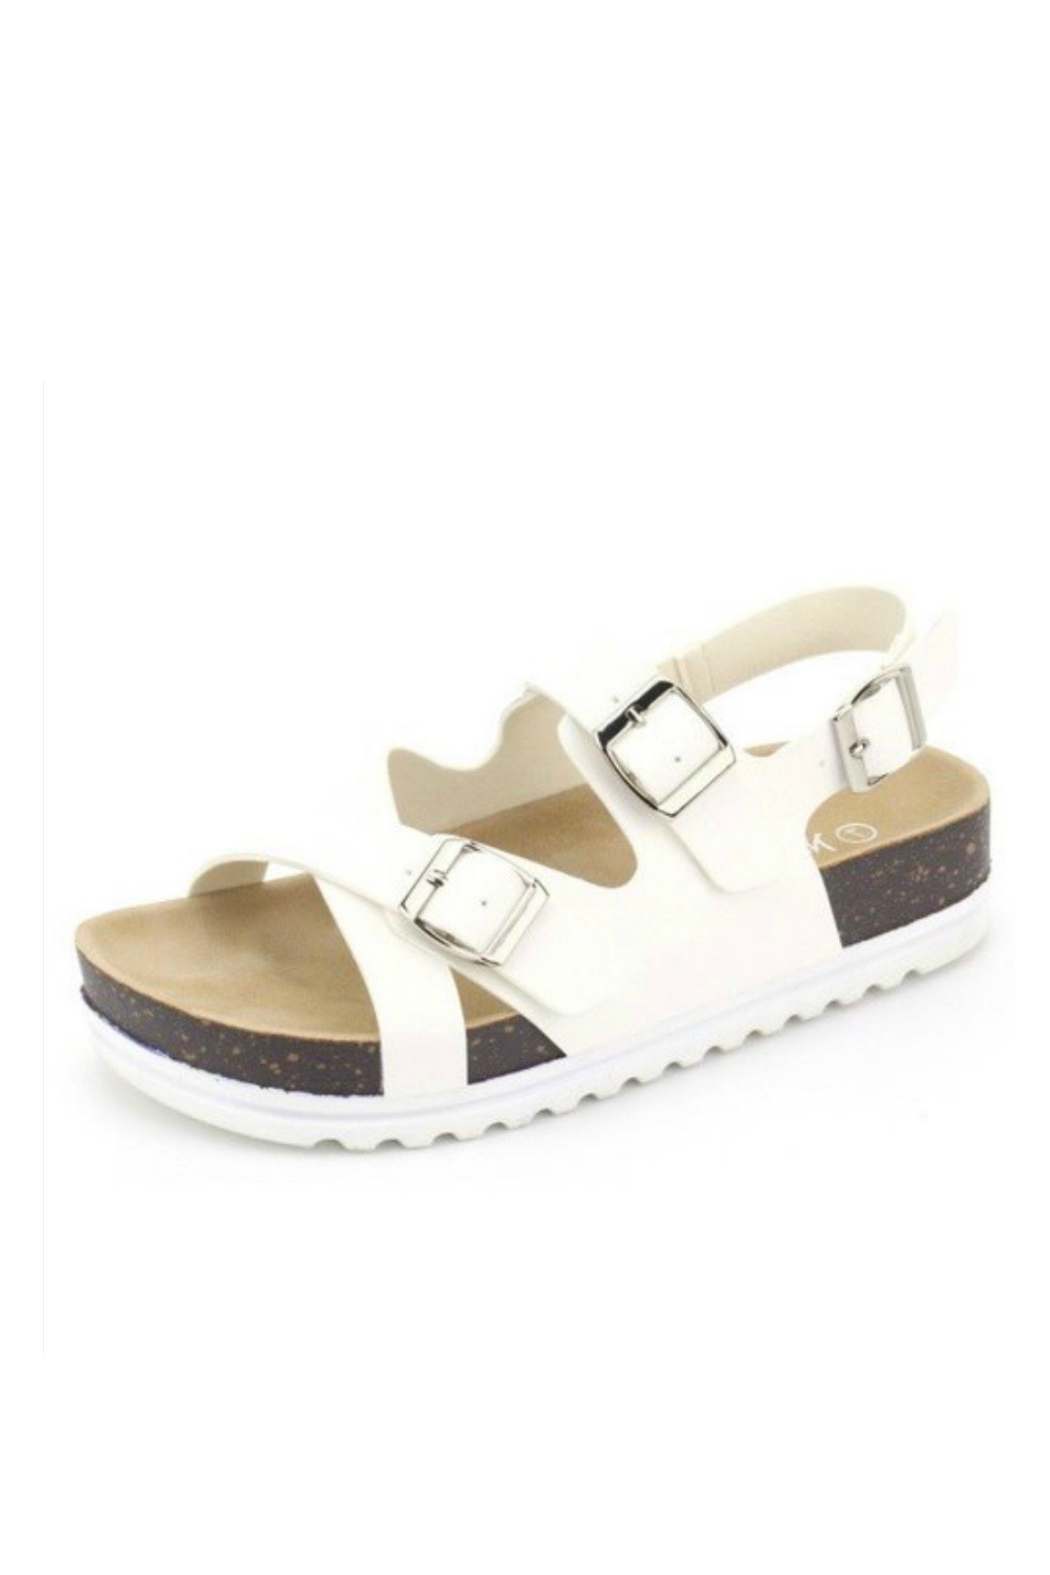 Let's See Style White Cork Sandal - Main Image